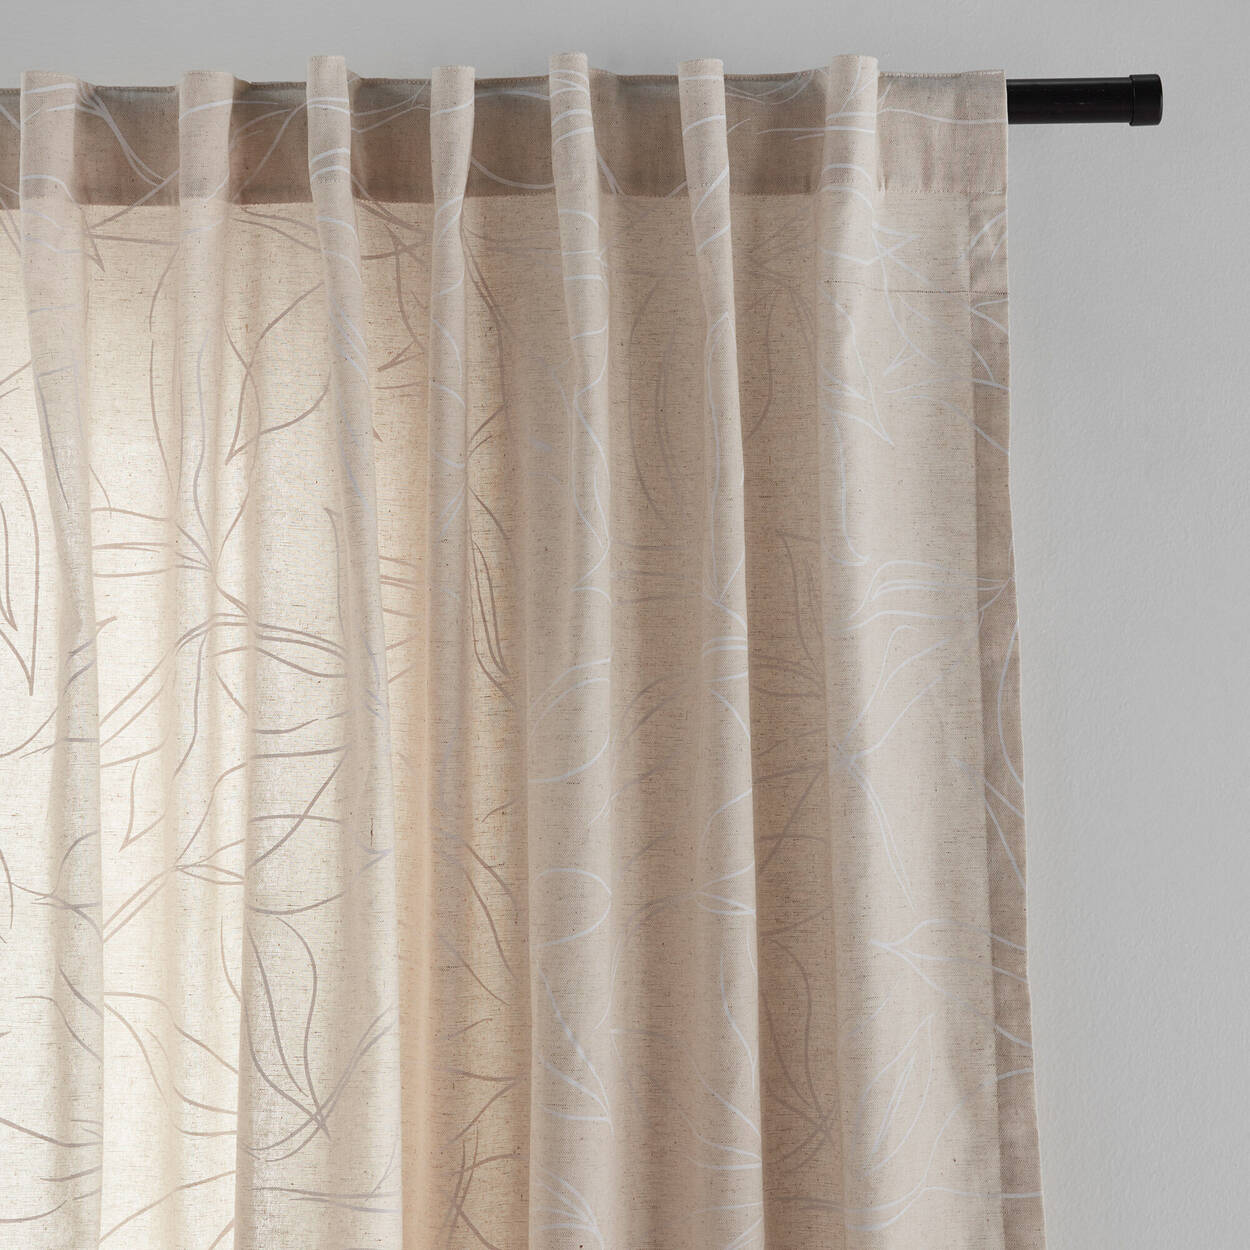 Jamika Curtain with White Vectoral Leaves